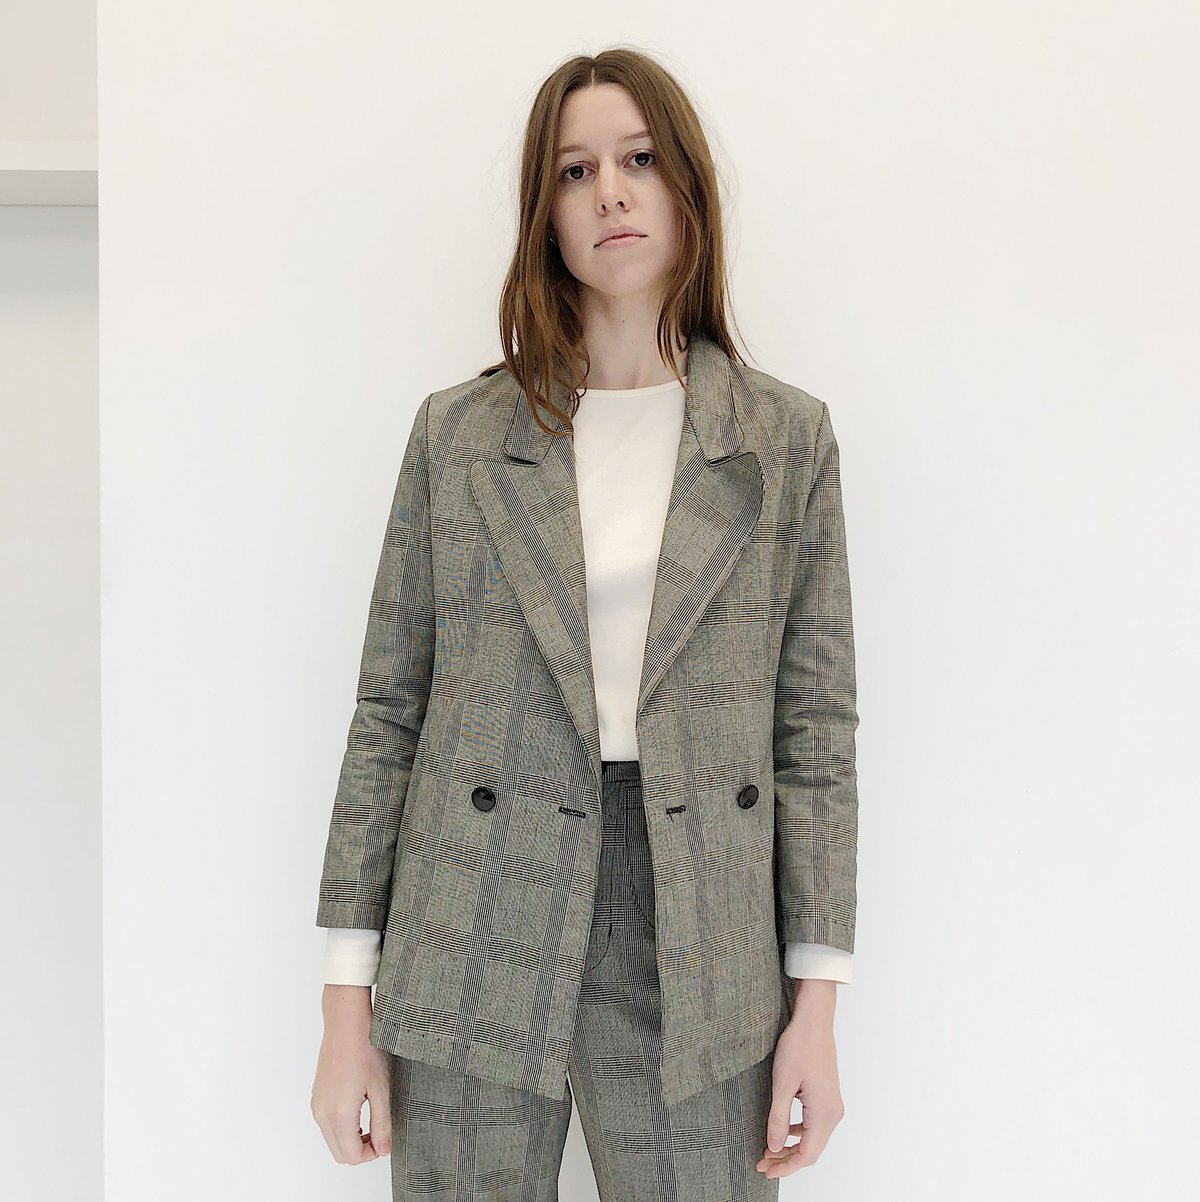 Laurs Kemp Glen Plaid Donna Blazer $280